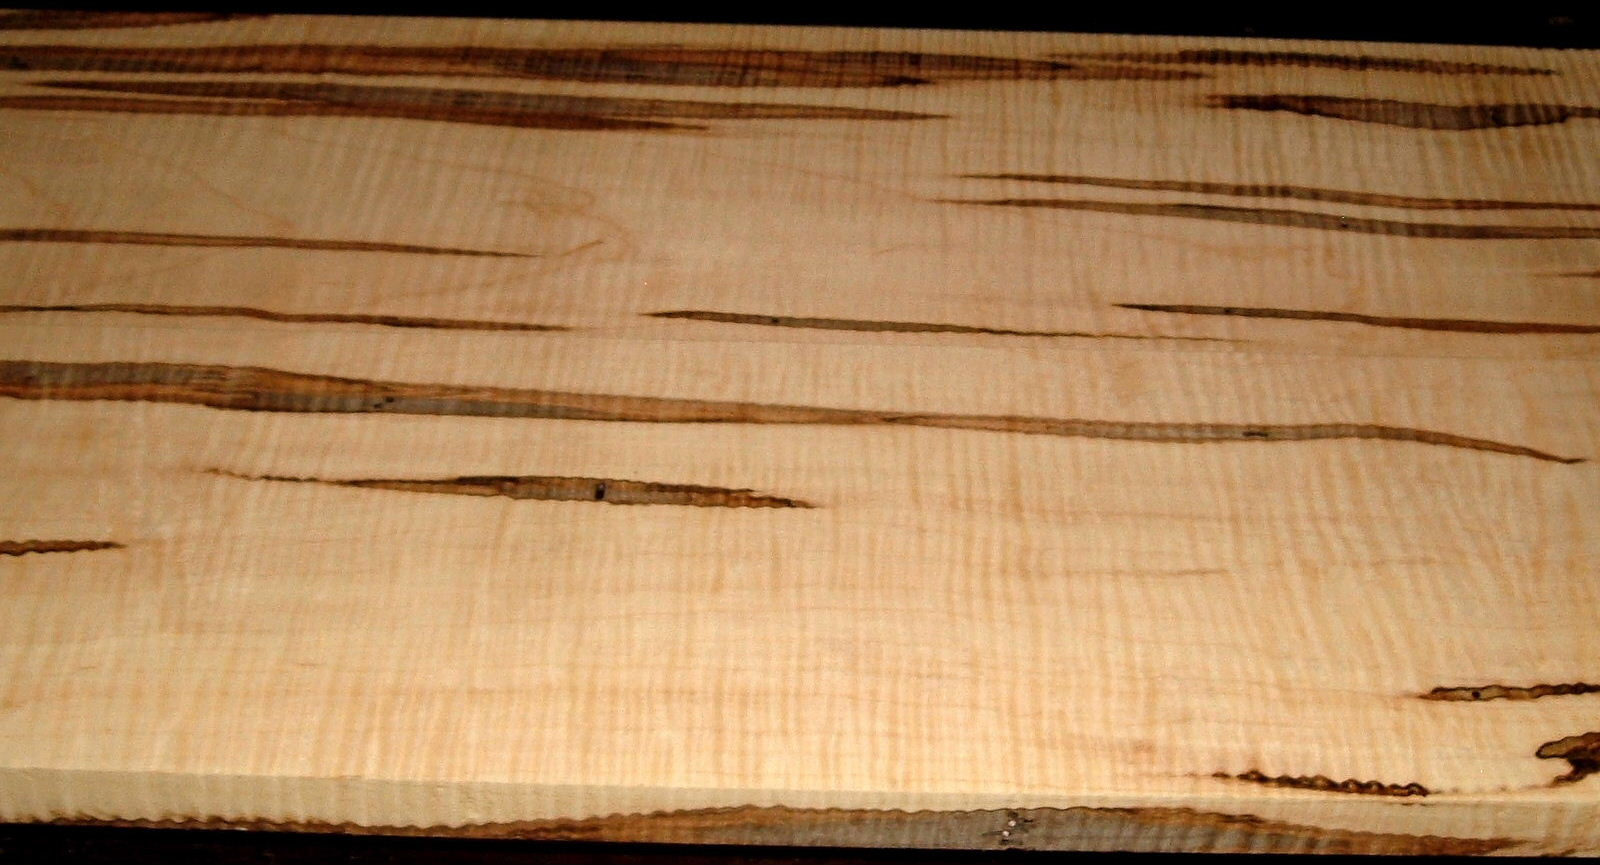 AM2002-21L, 2BD Set, 7/8x7-1/8x53 ,7/8x6-3/4x53, Curly Ambrosia Maple, Cut from same Plank